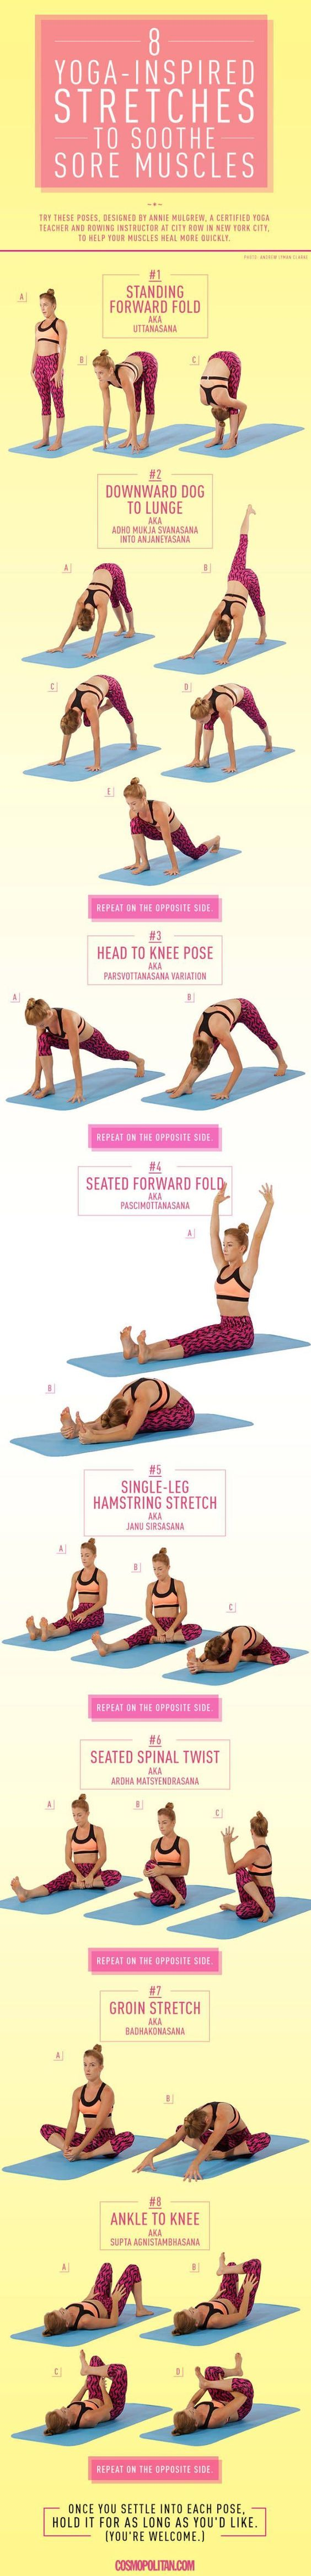 Stretching increases blood flow to the muscles to relieve this stiffness, lengthen muscles, and improve your flexibility for a greater range of motion.